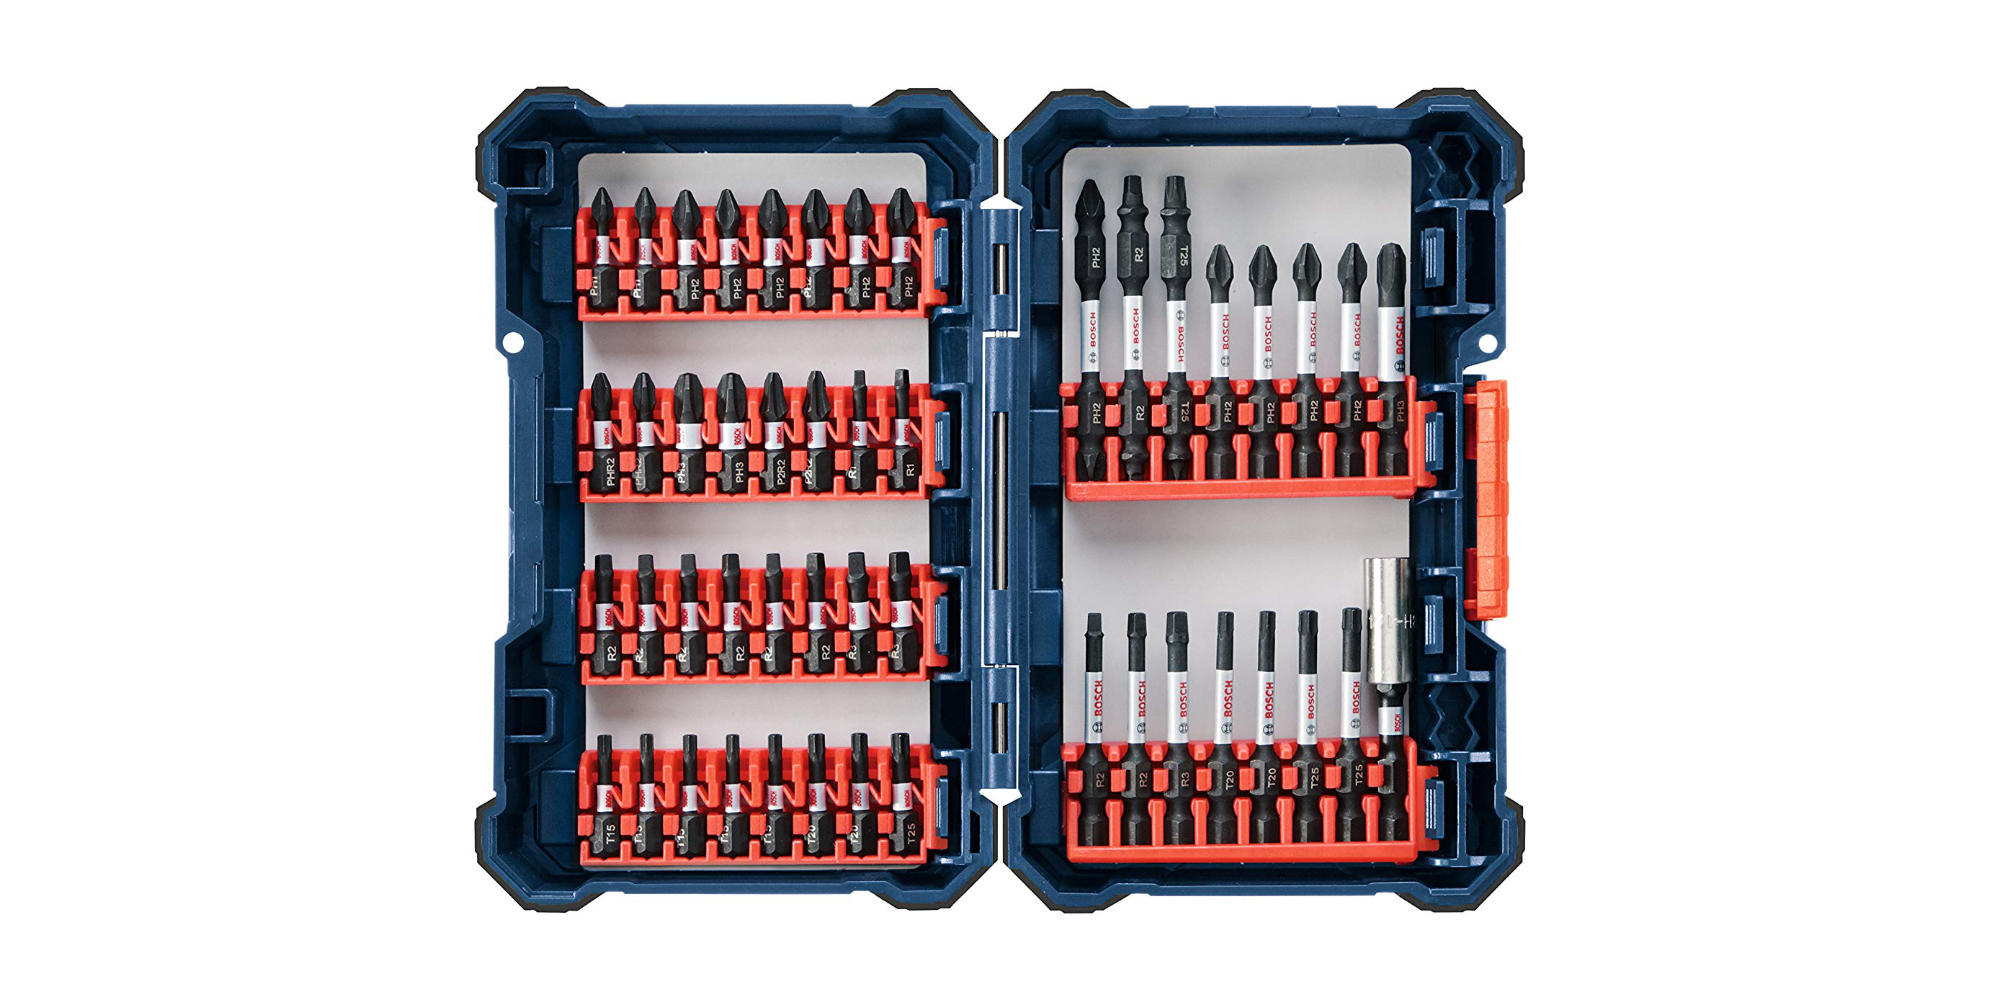 These Bosch and CRAFTSMAN bit sets are priced from $6.50 at Amazon - 9to5Toys